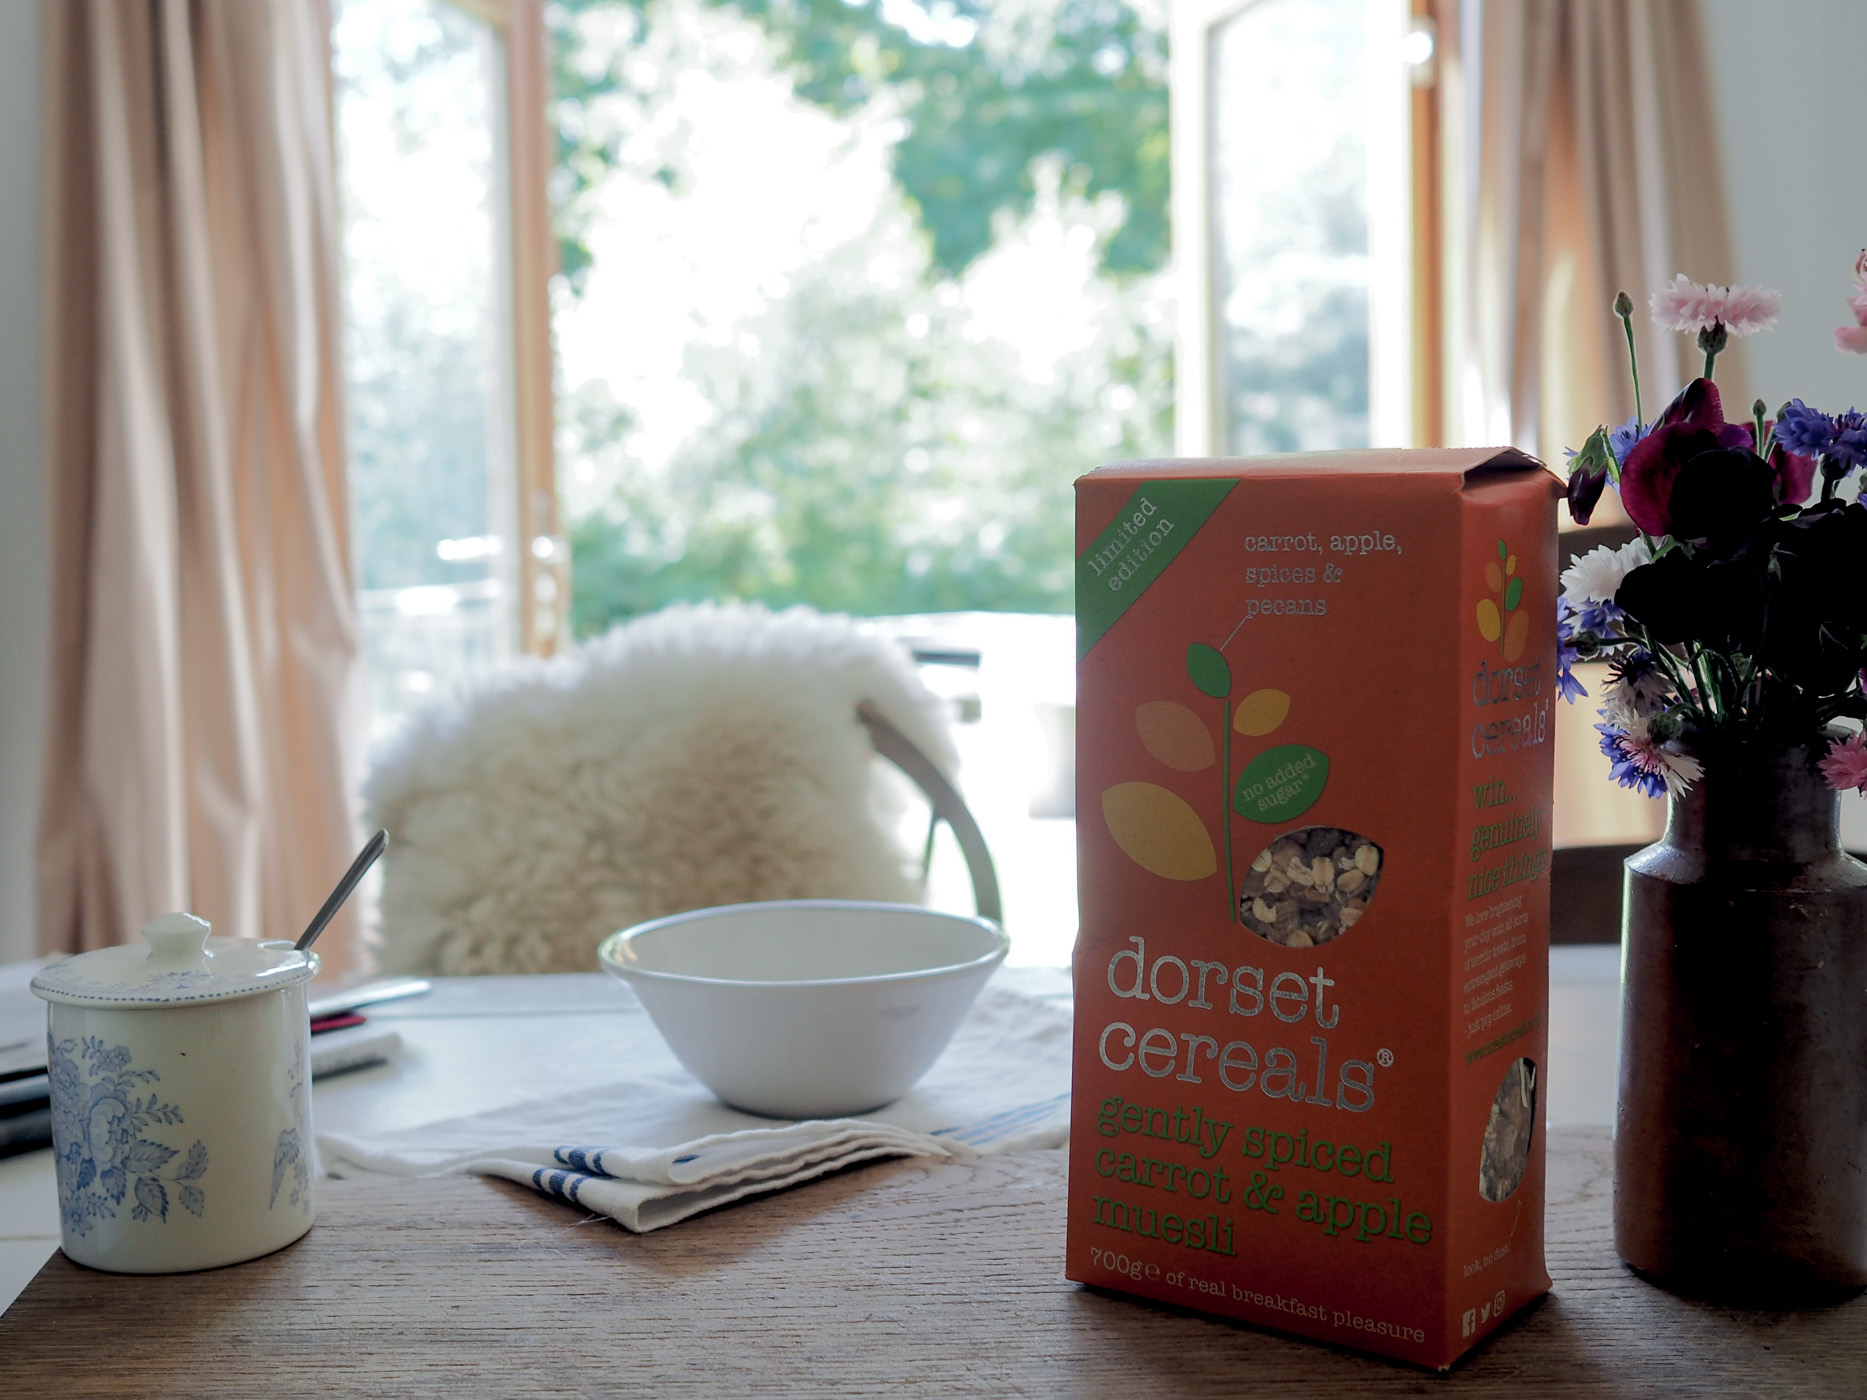 The Woodland Wife - Slow Breakfast - Dorset Cereals - Limited Edition - Gently Spiced Carrot & Apple Muesli